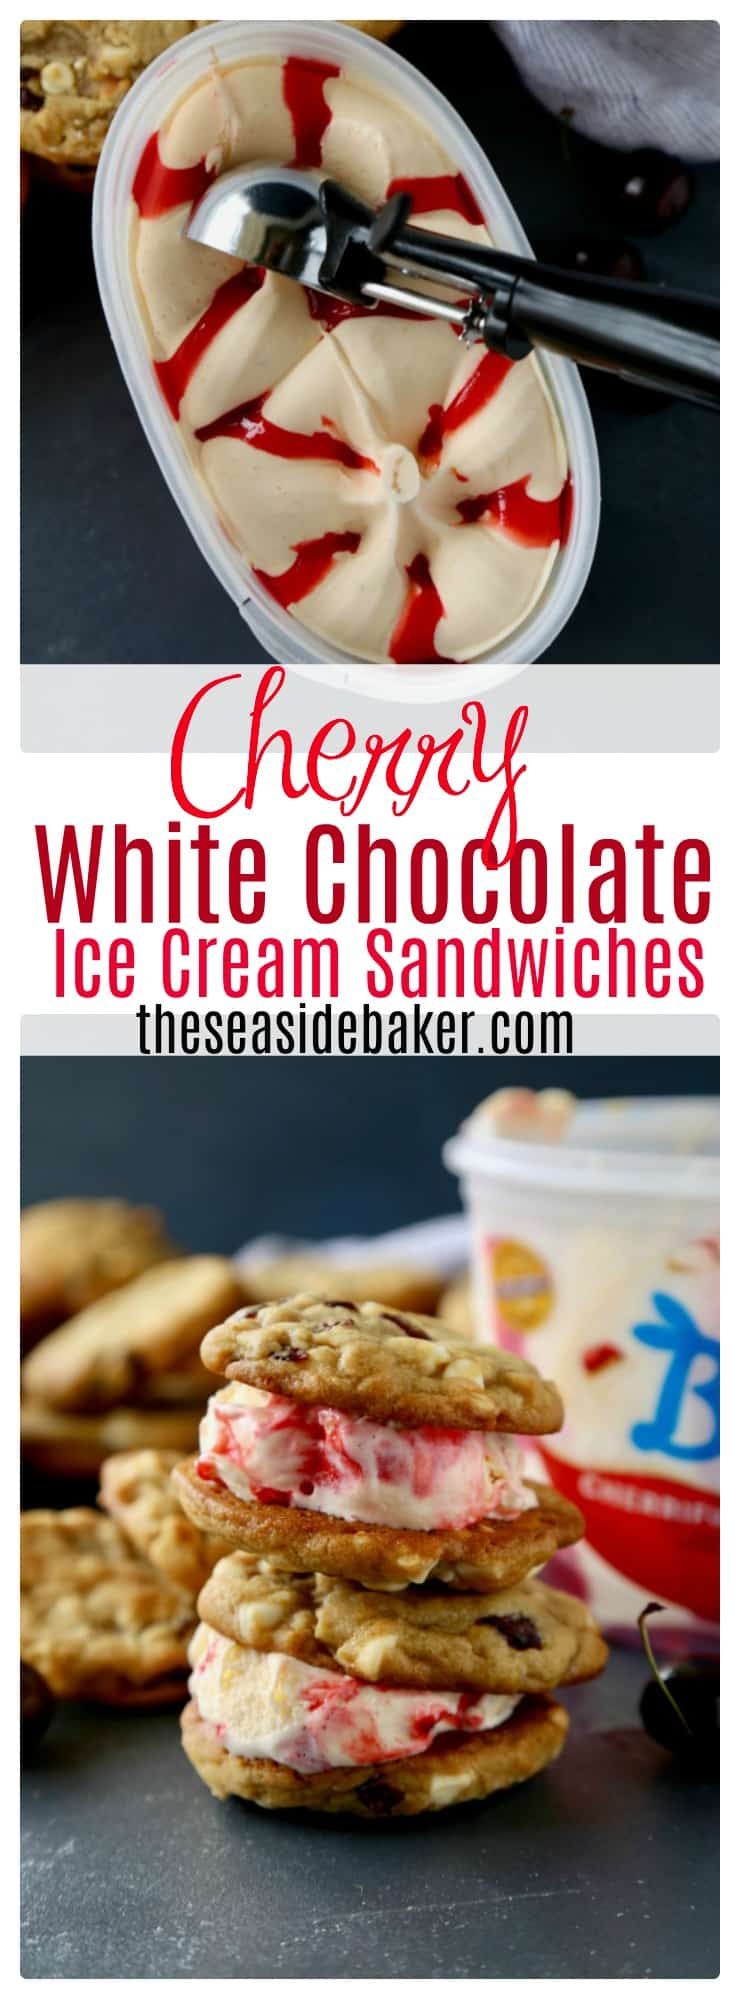 Soft and chewy white chocolate chip cookies studded with dried cherries that sandwich cherry cheesecake ice cream